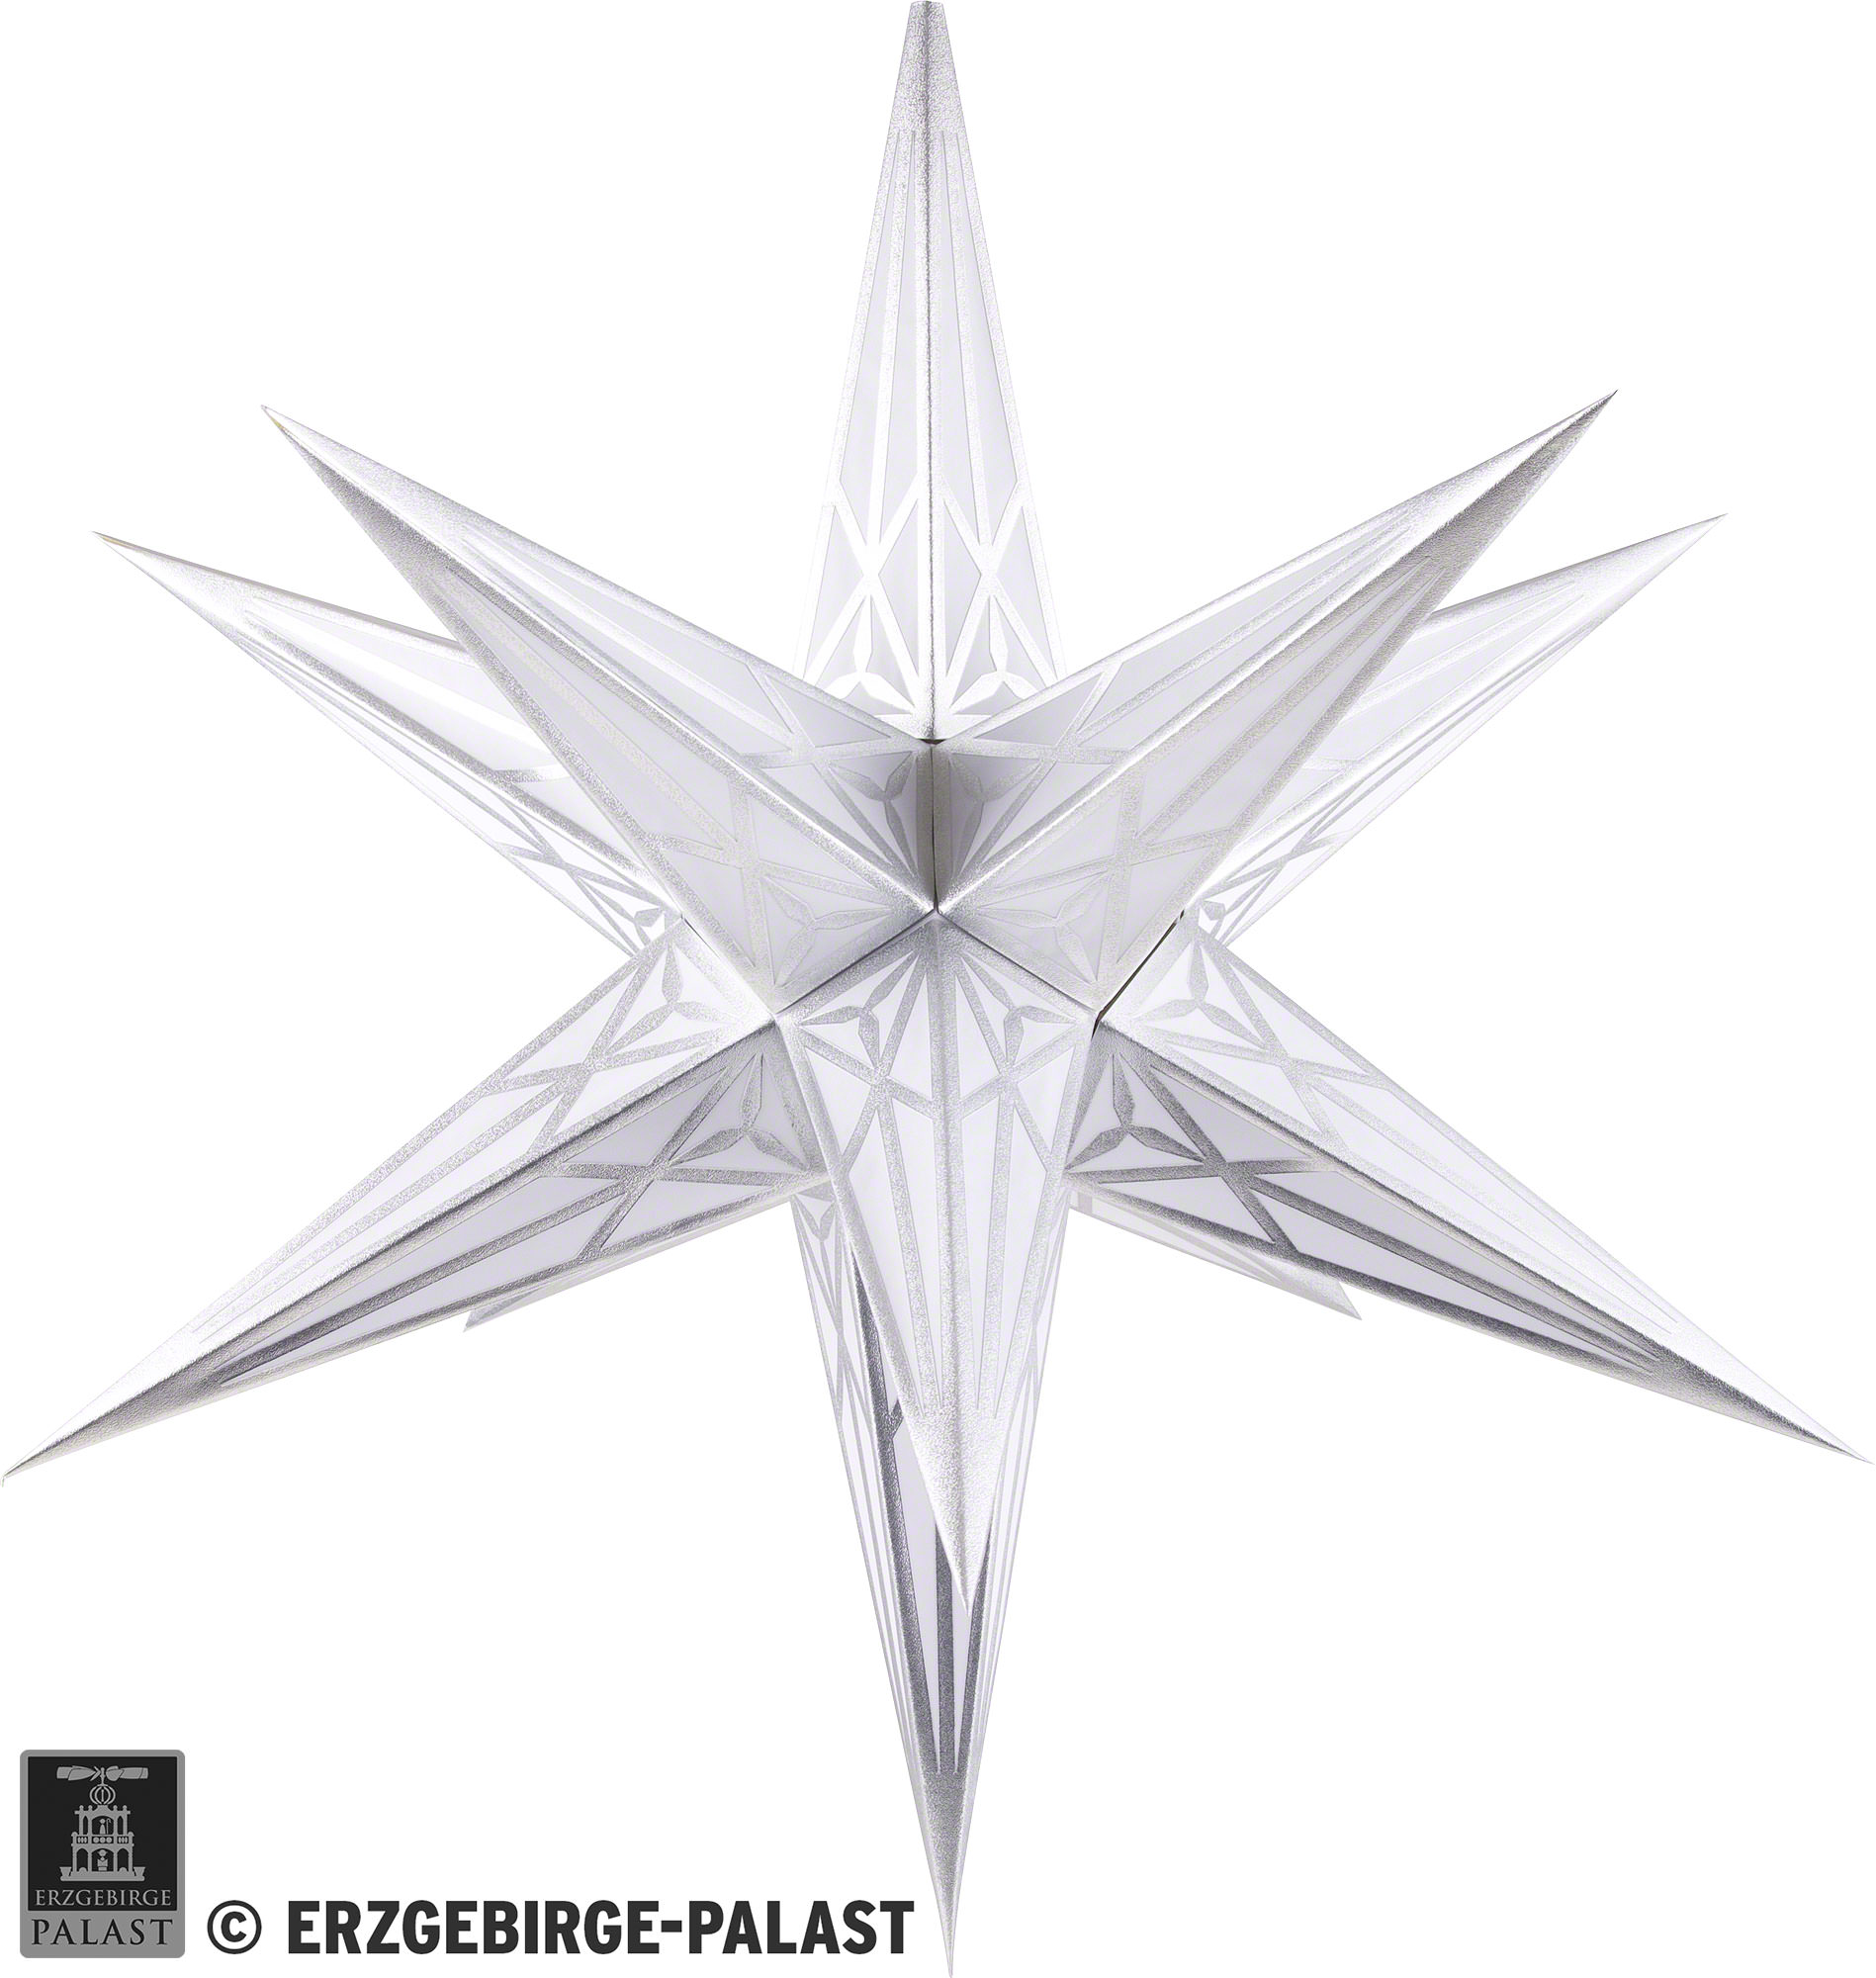 Weihnachtsstern Original Hartenstein Christmas Star For Inside Use White With Silver 68 Cm 27 Inch